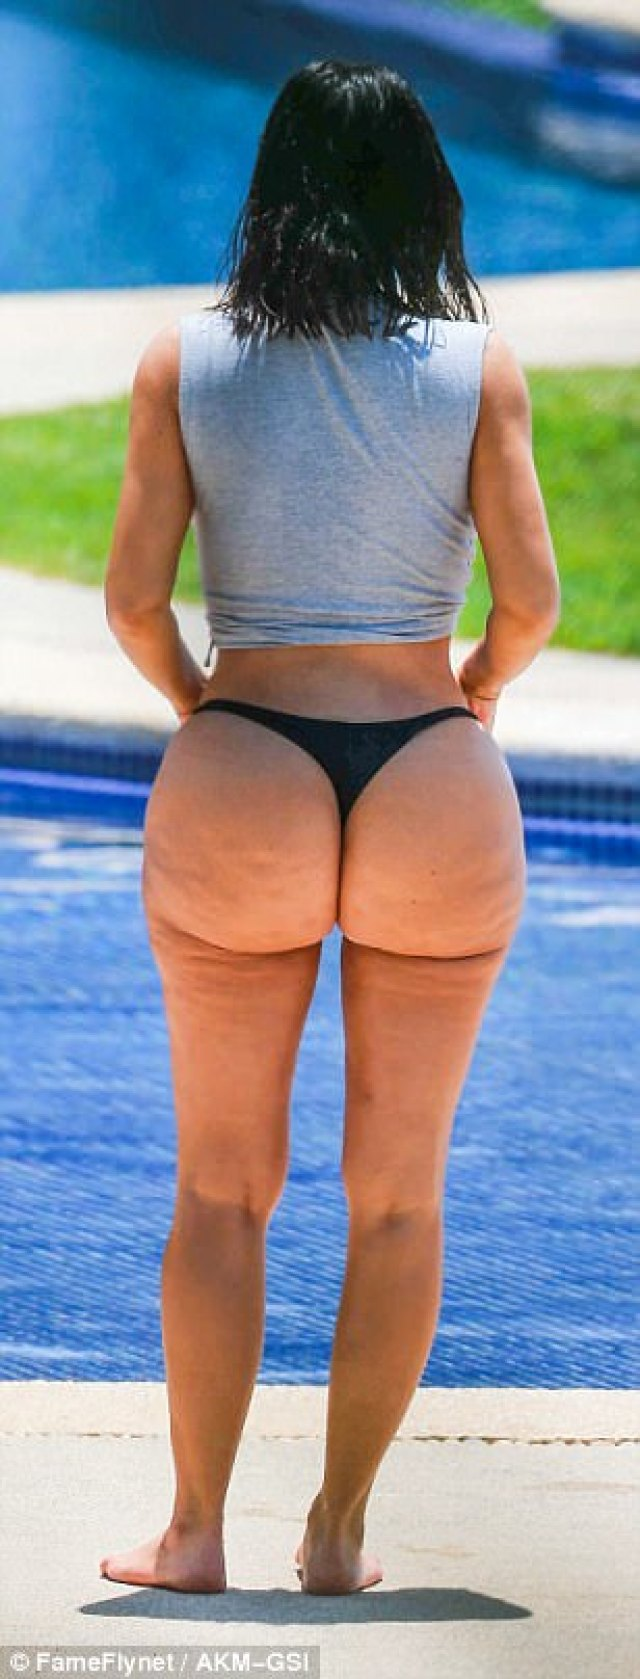 Cheeky: Her thong bikini was a metaphorical middle finger to the haters